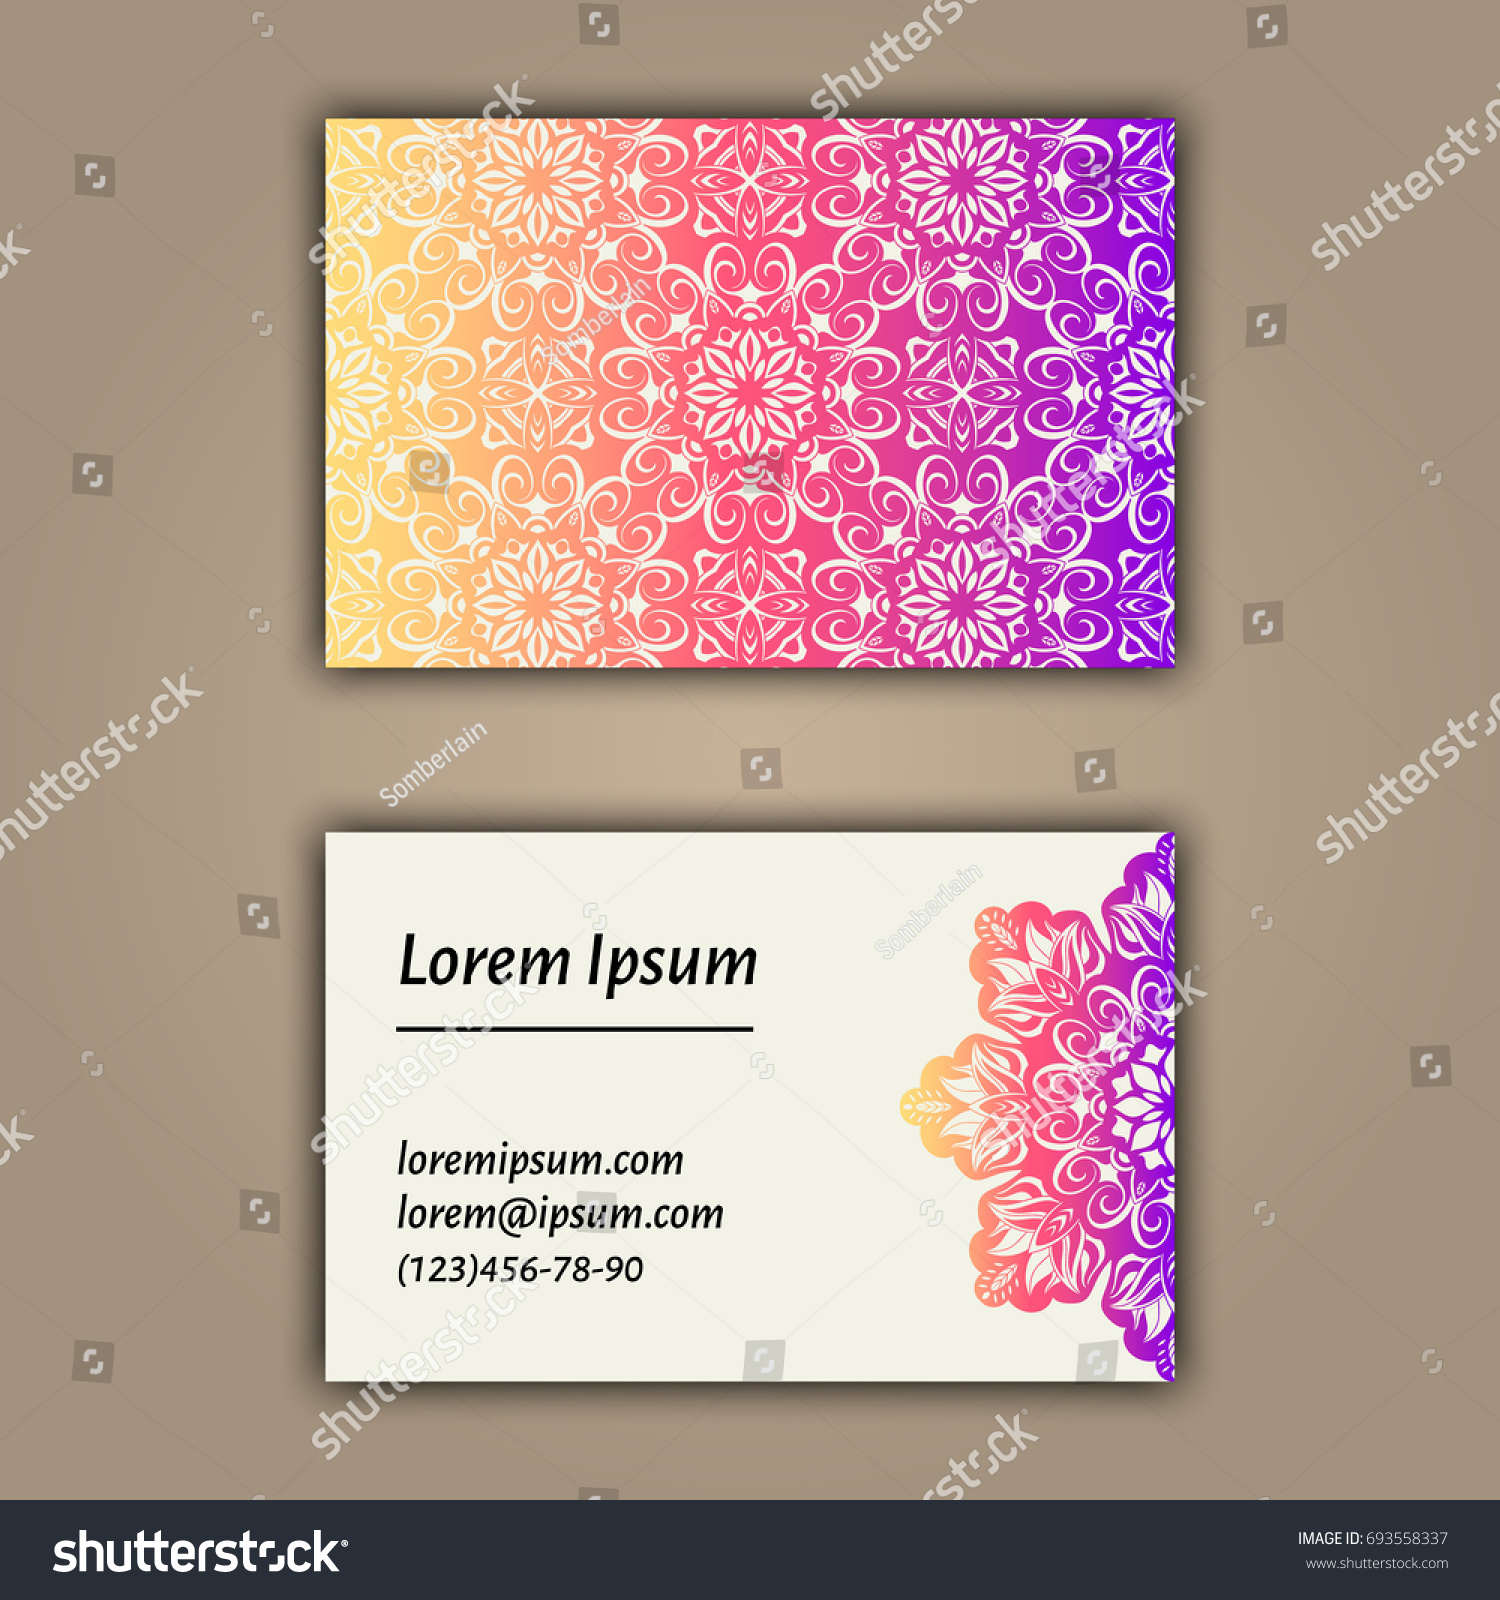 Glitter business cards gallery free business cards buypower business card images free business cards inspirational image of glitter business cards business cards and magicingreecefo Image collections